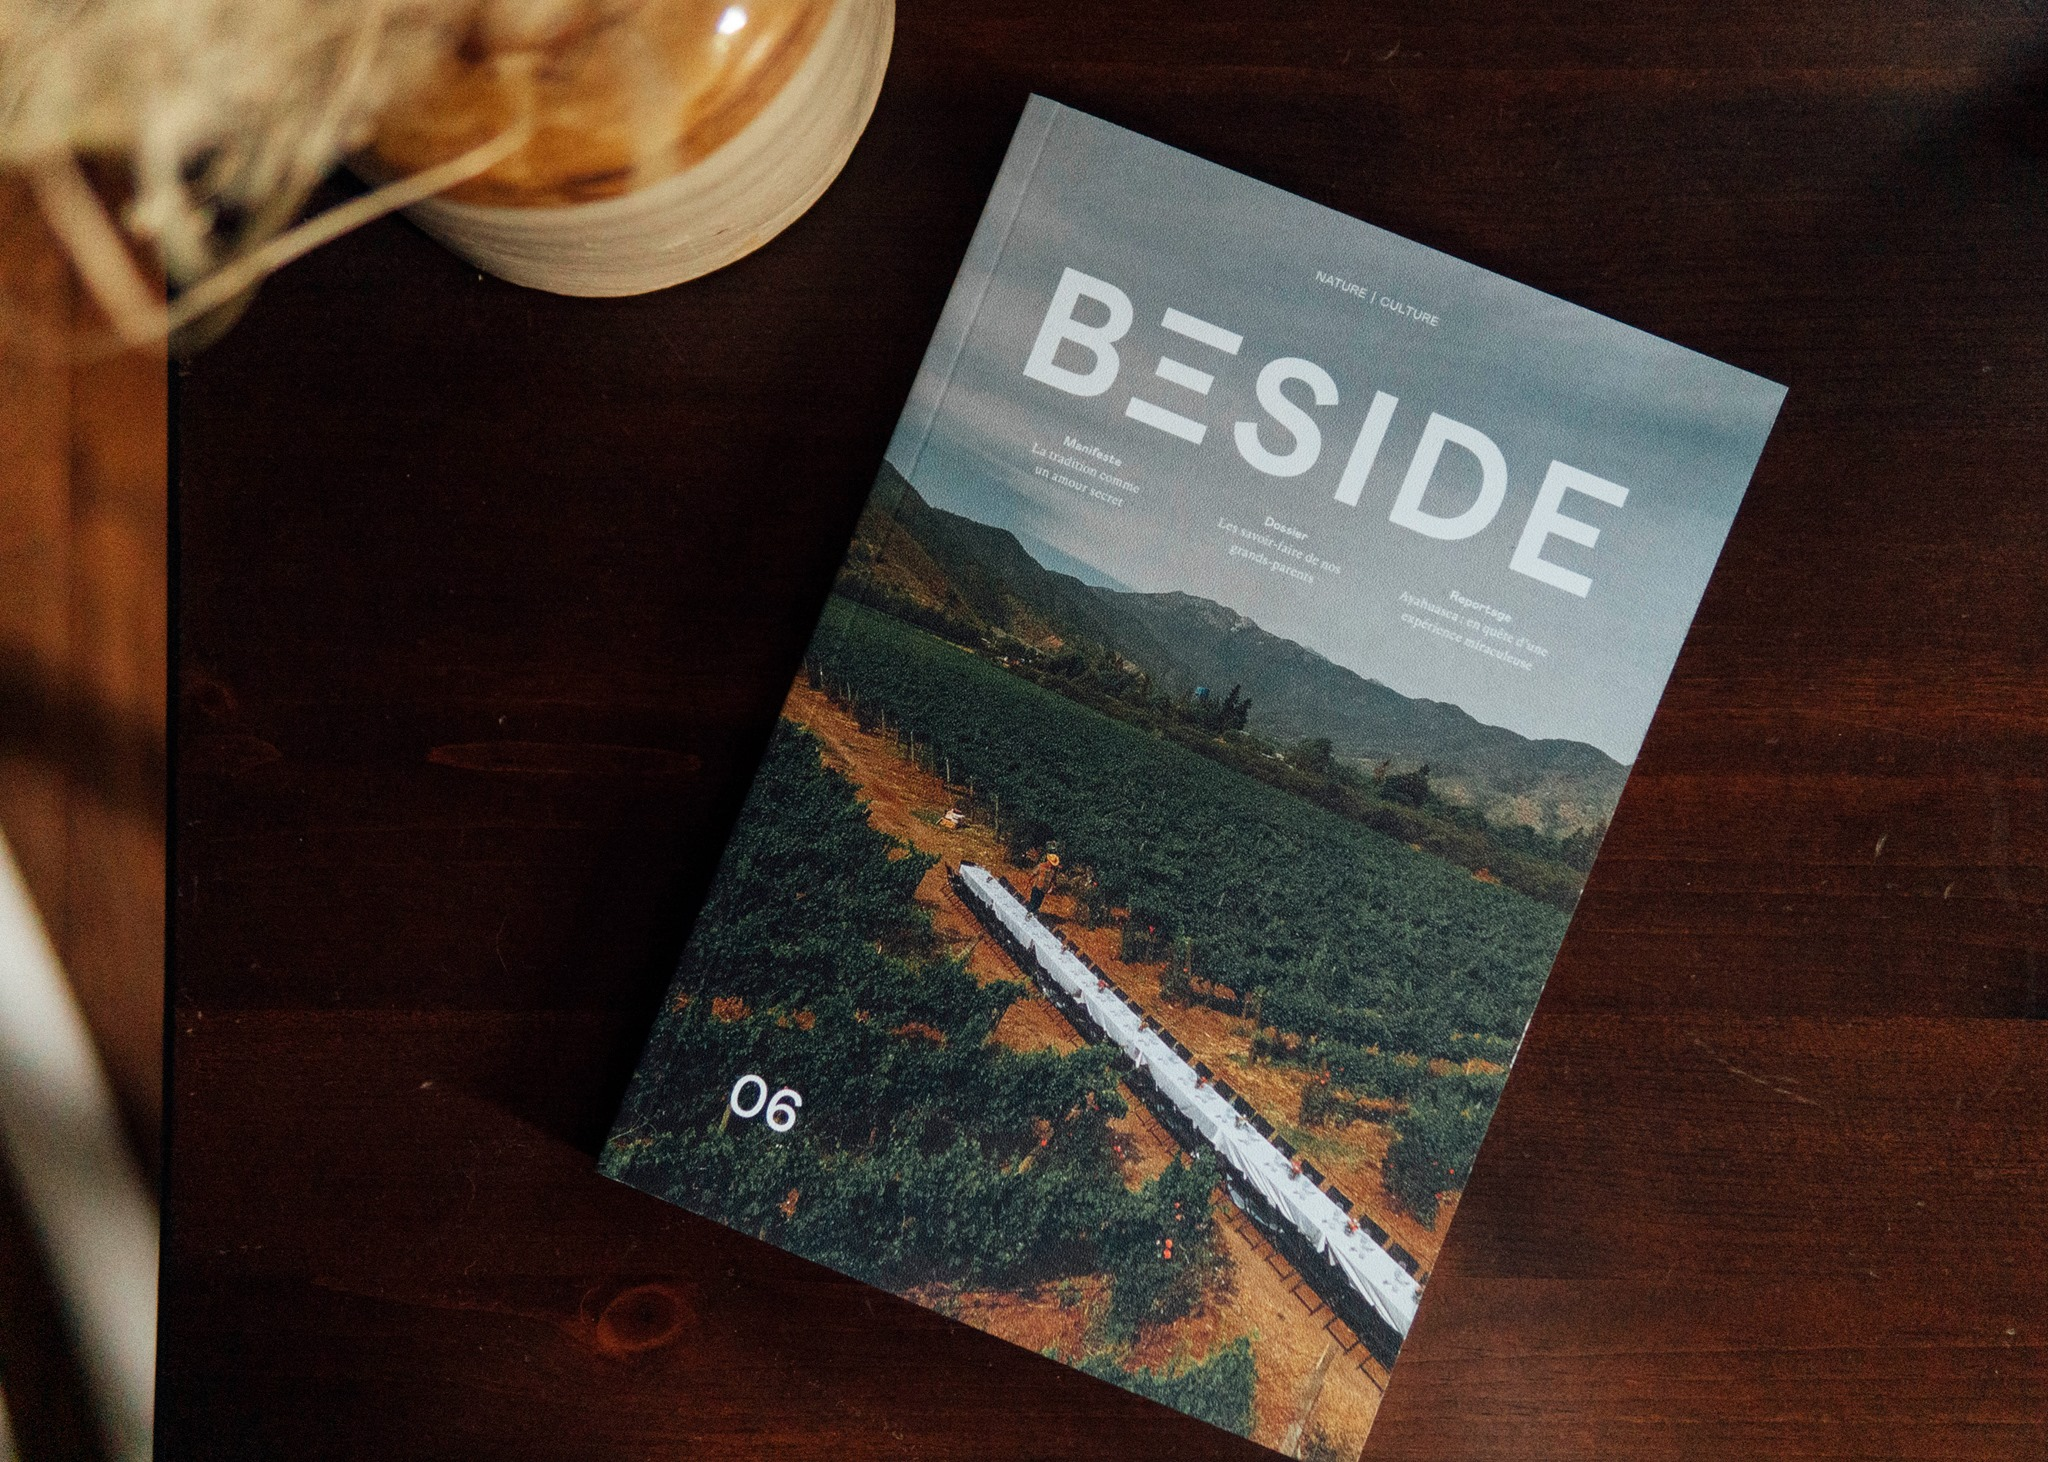 BESIDE_issue06-1